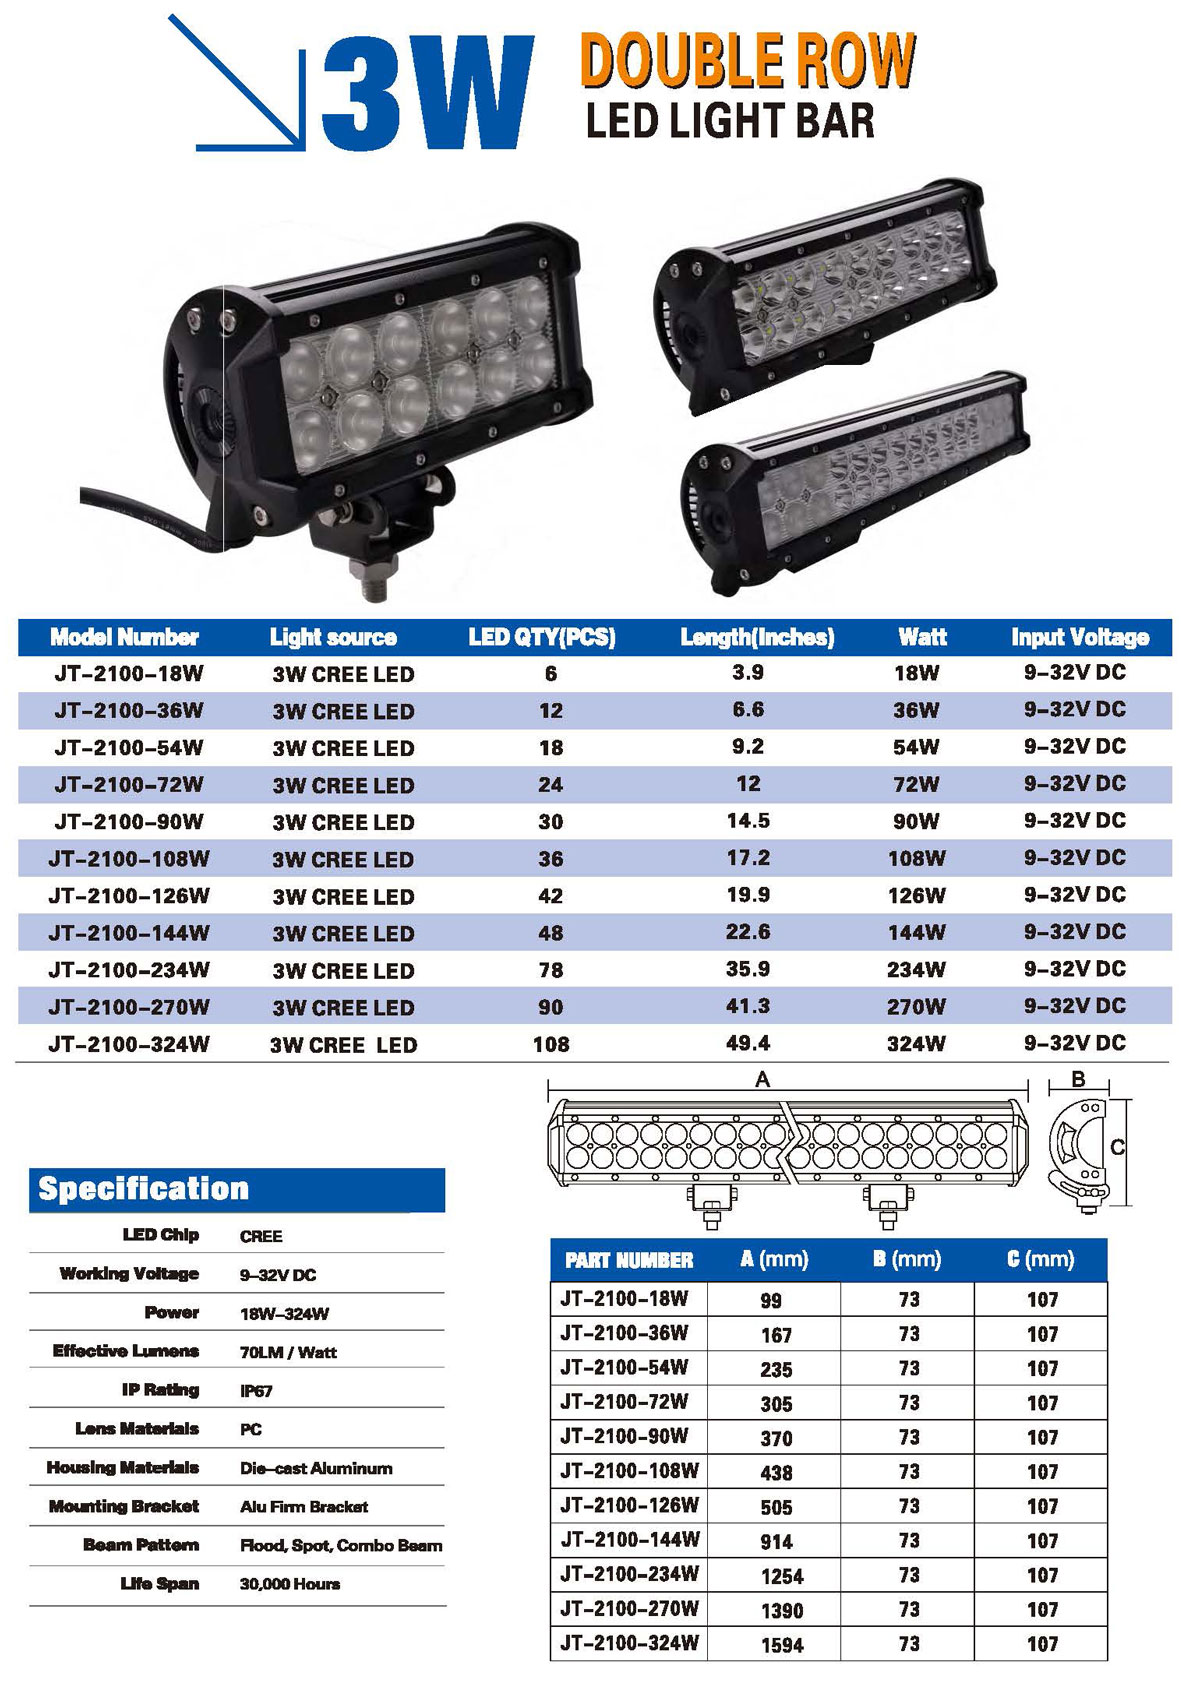 LED Light Bar Size